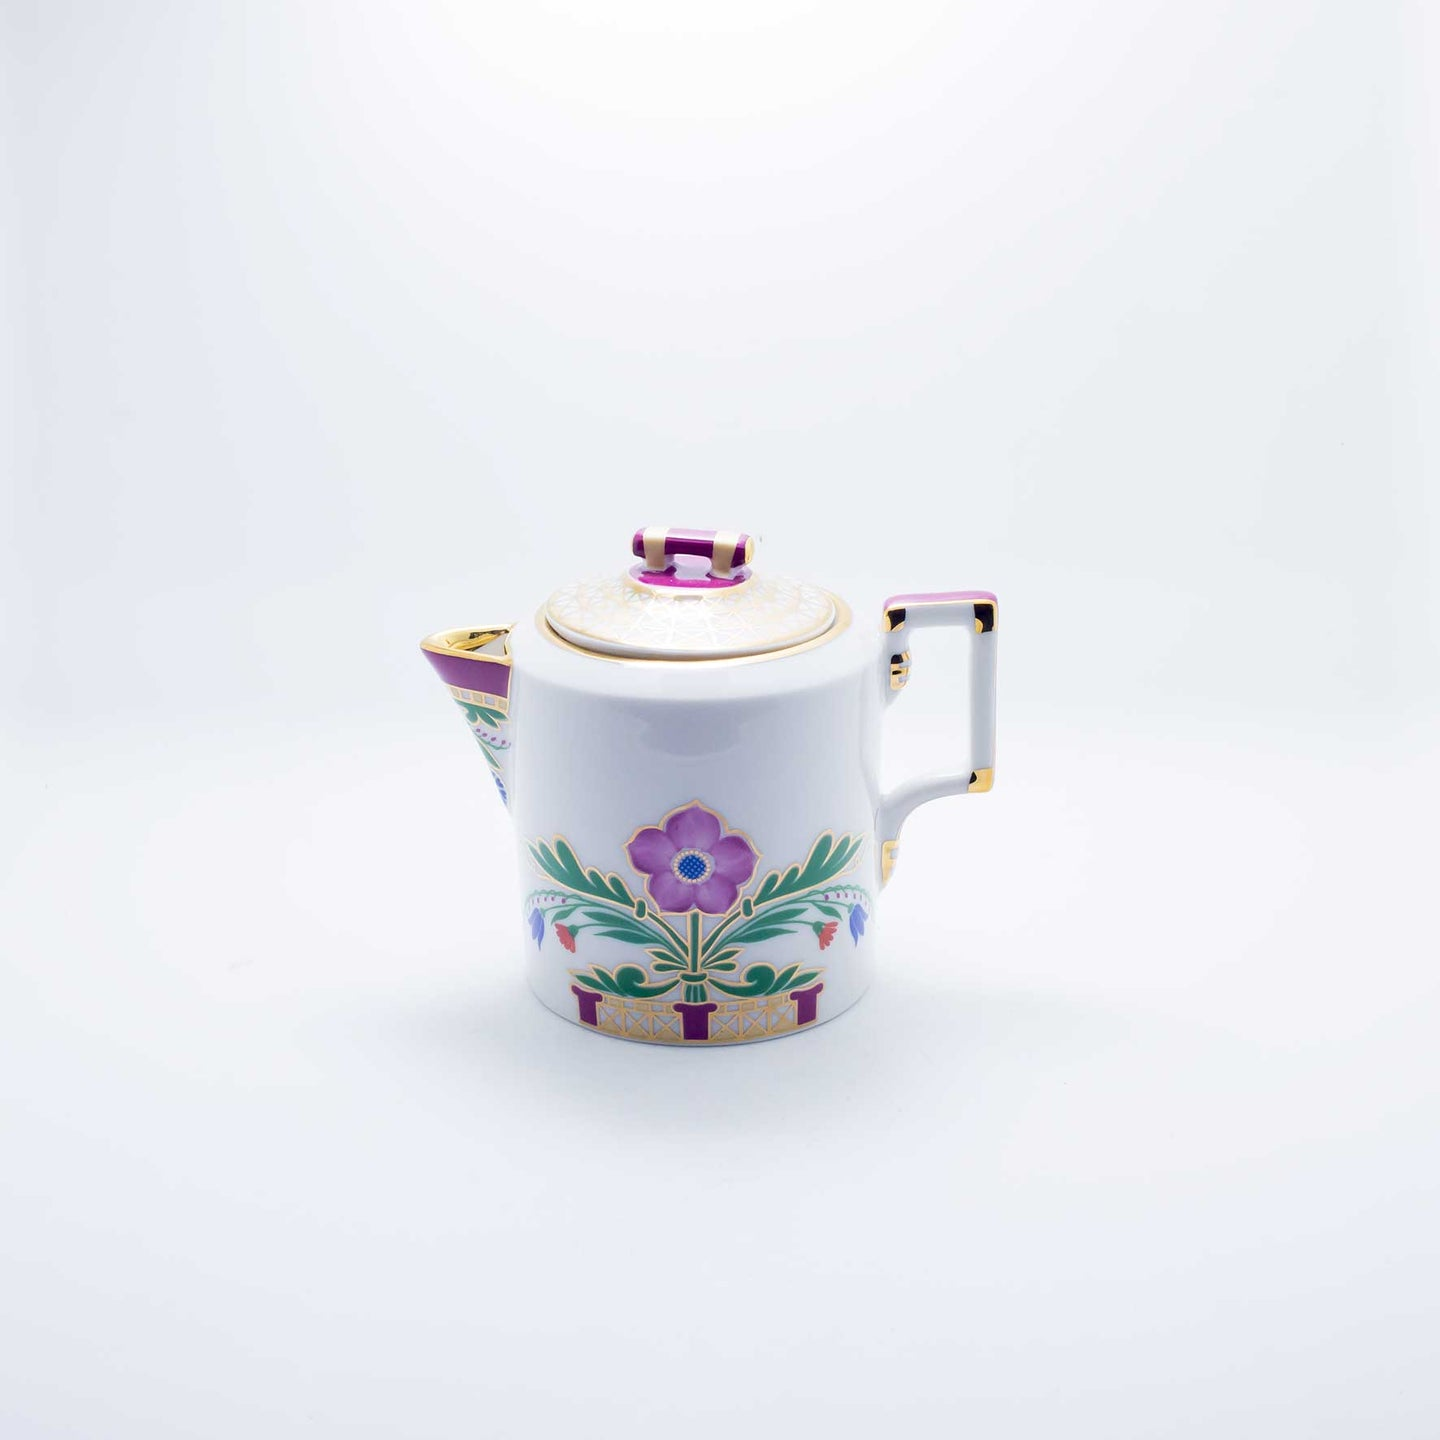 Refresh Moment Imperial Porcelain St. Petersburg 1744 The Moscow River Creamer